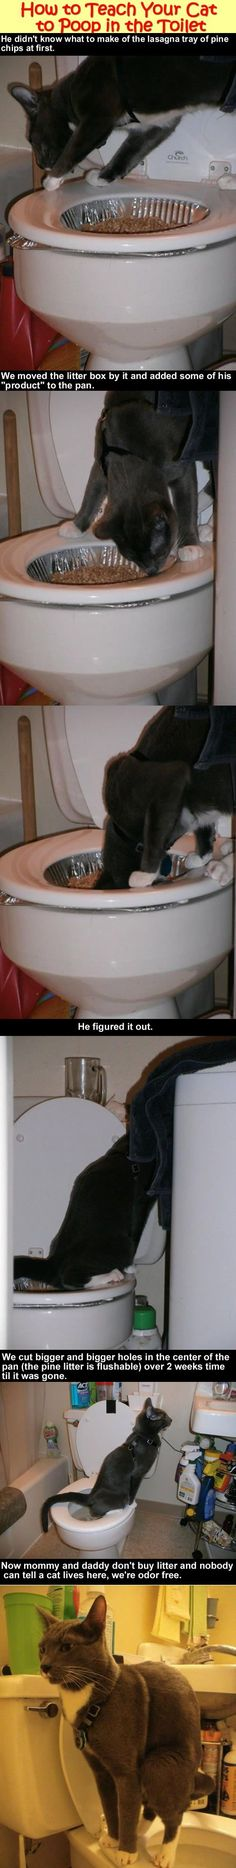 OMG! hahaha...This is genius!!!! I don't even own a cat and I want to do this